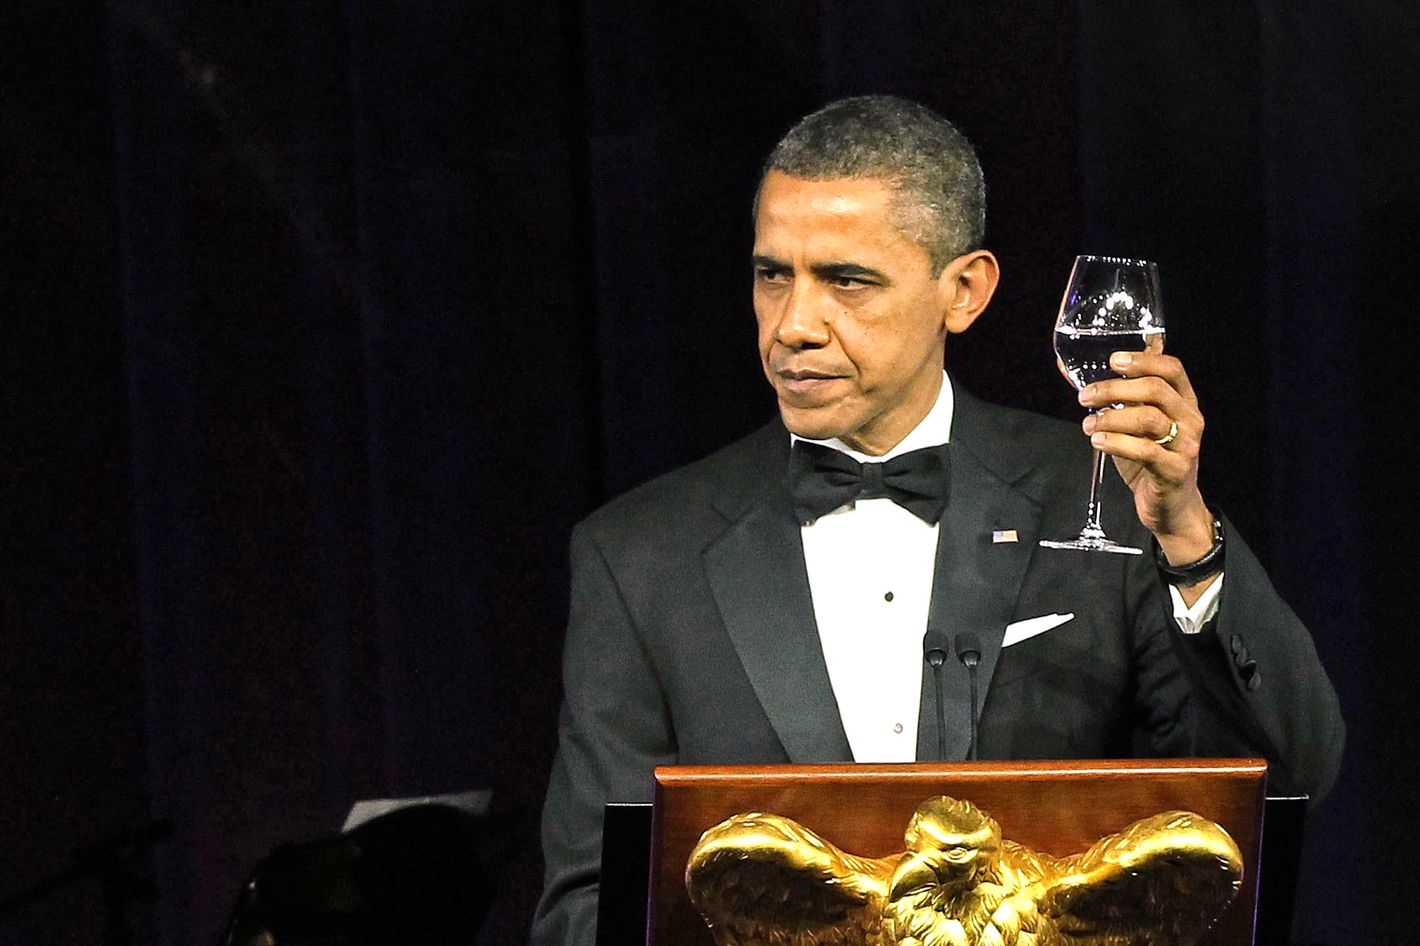 What are you drinking, Mr. President?